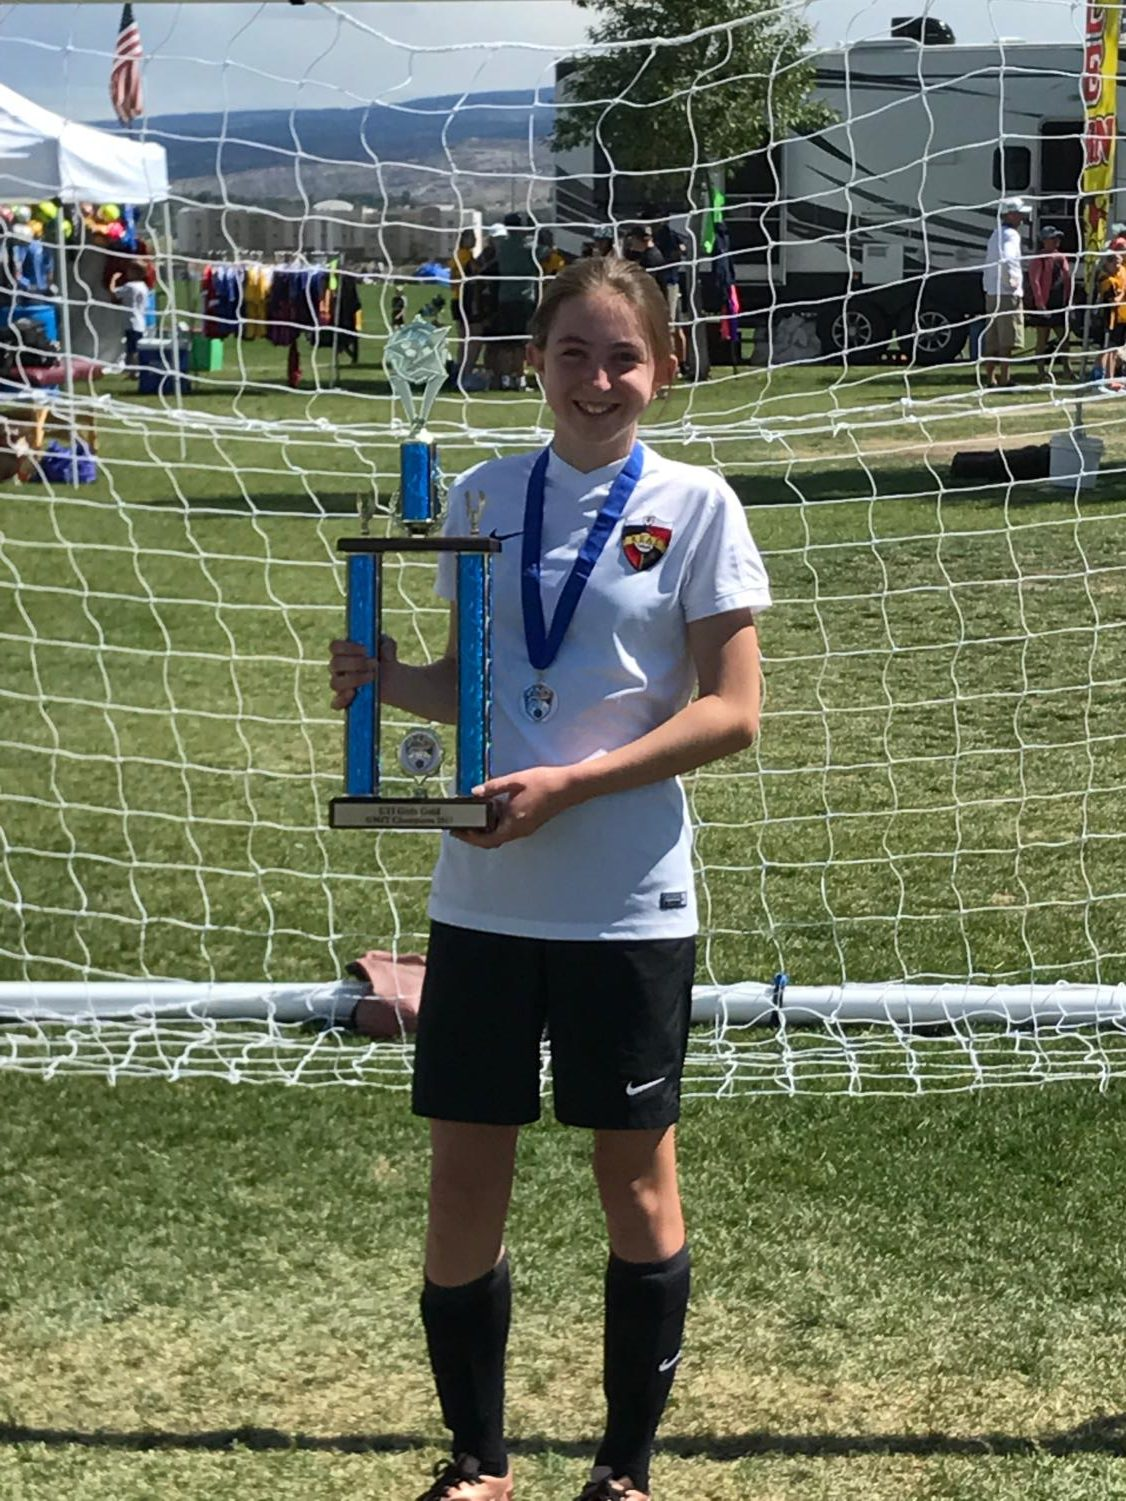 Zoe Bertino in 2016 after winning a soccer tournament. (photo by David Bertino)